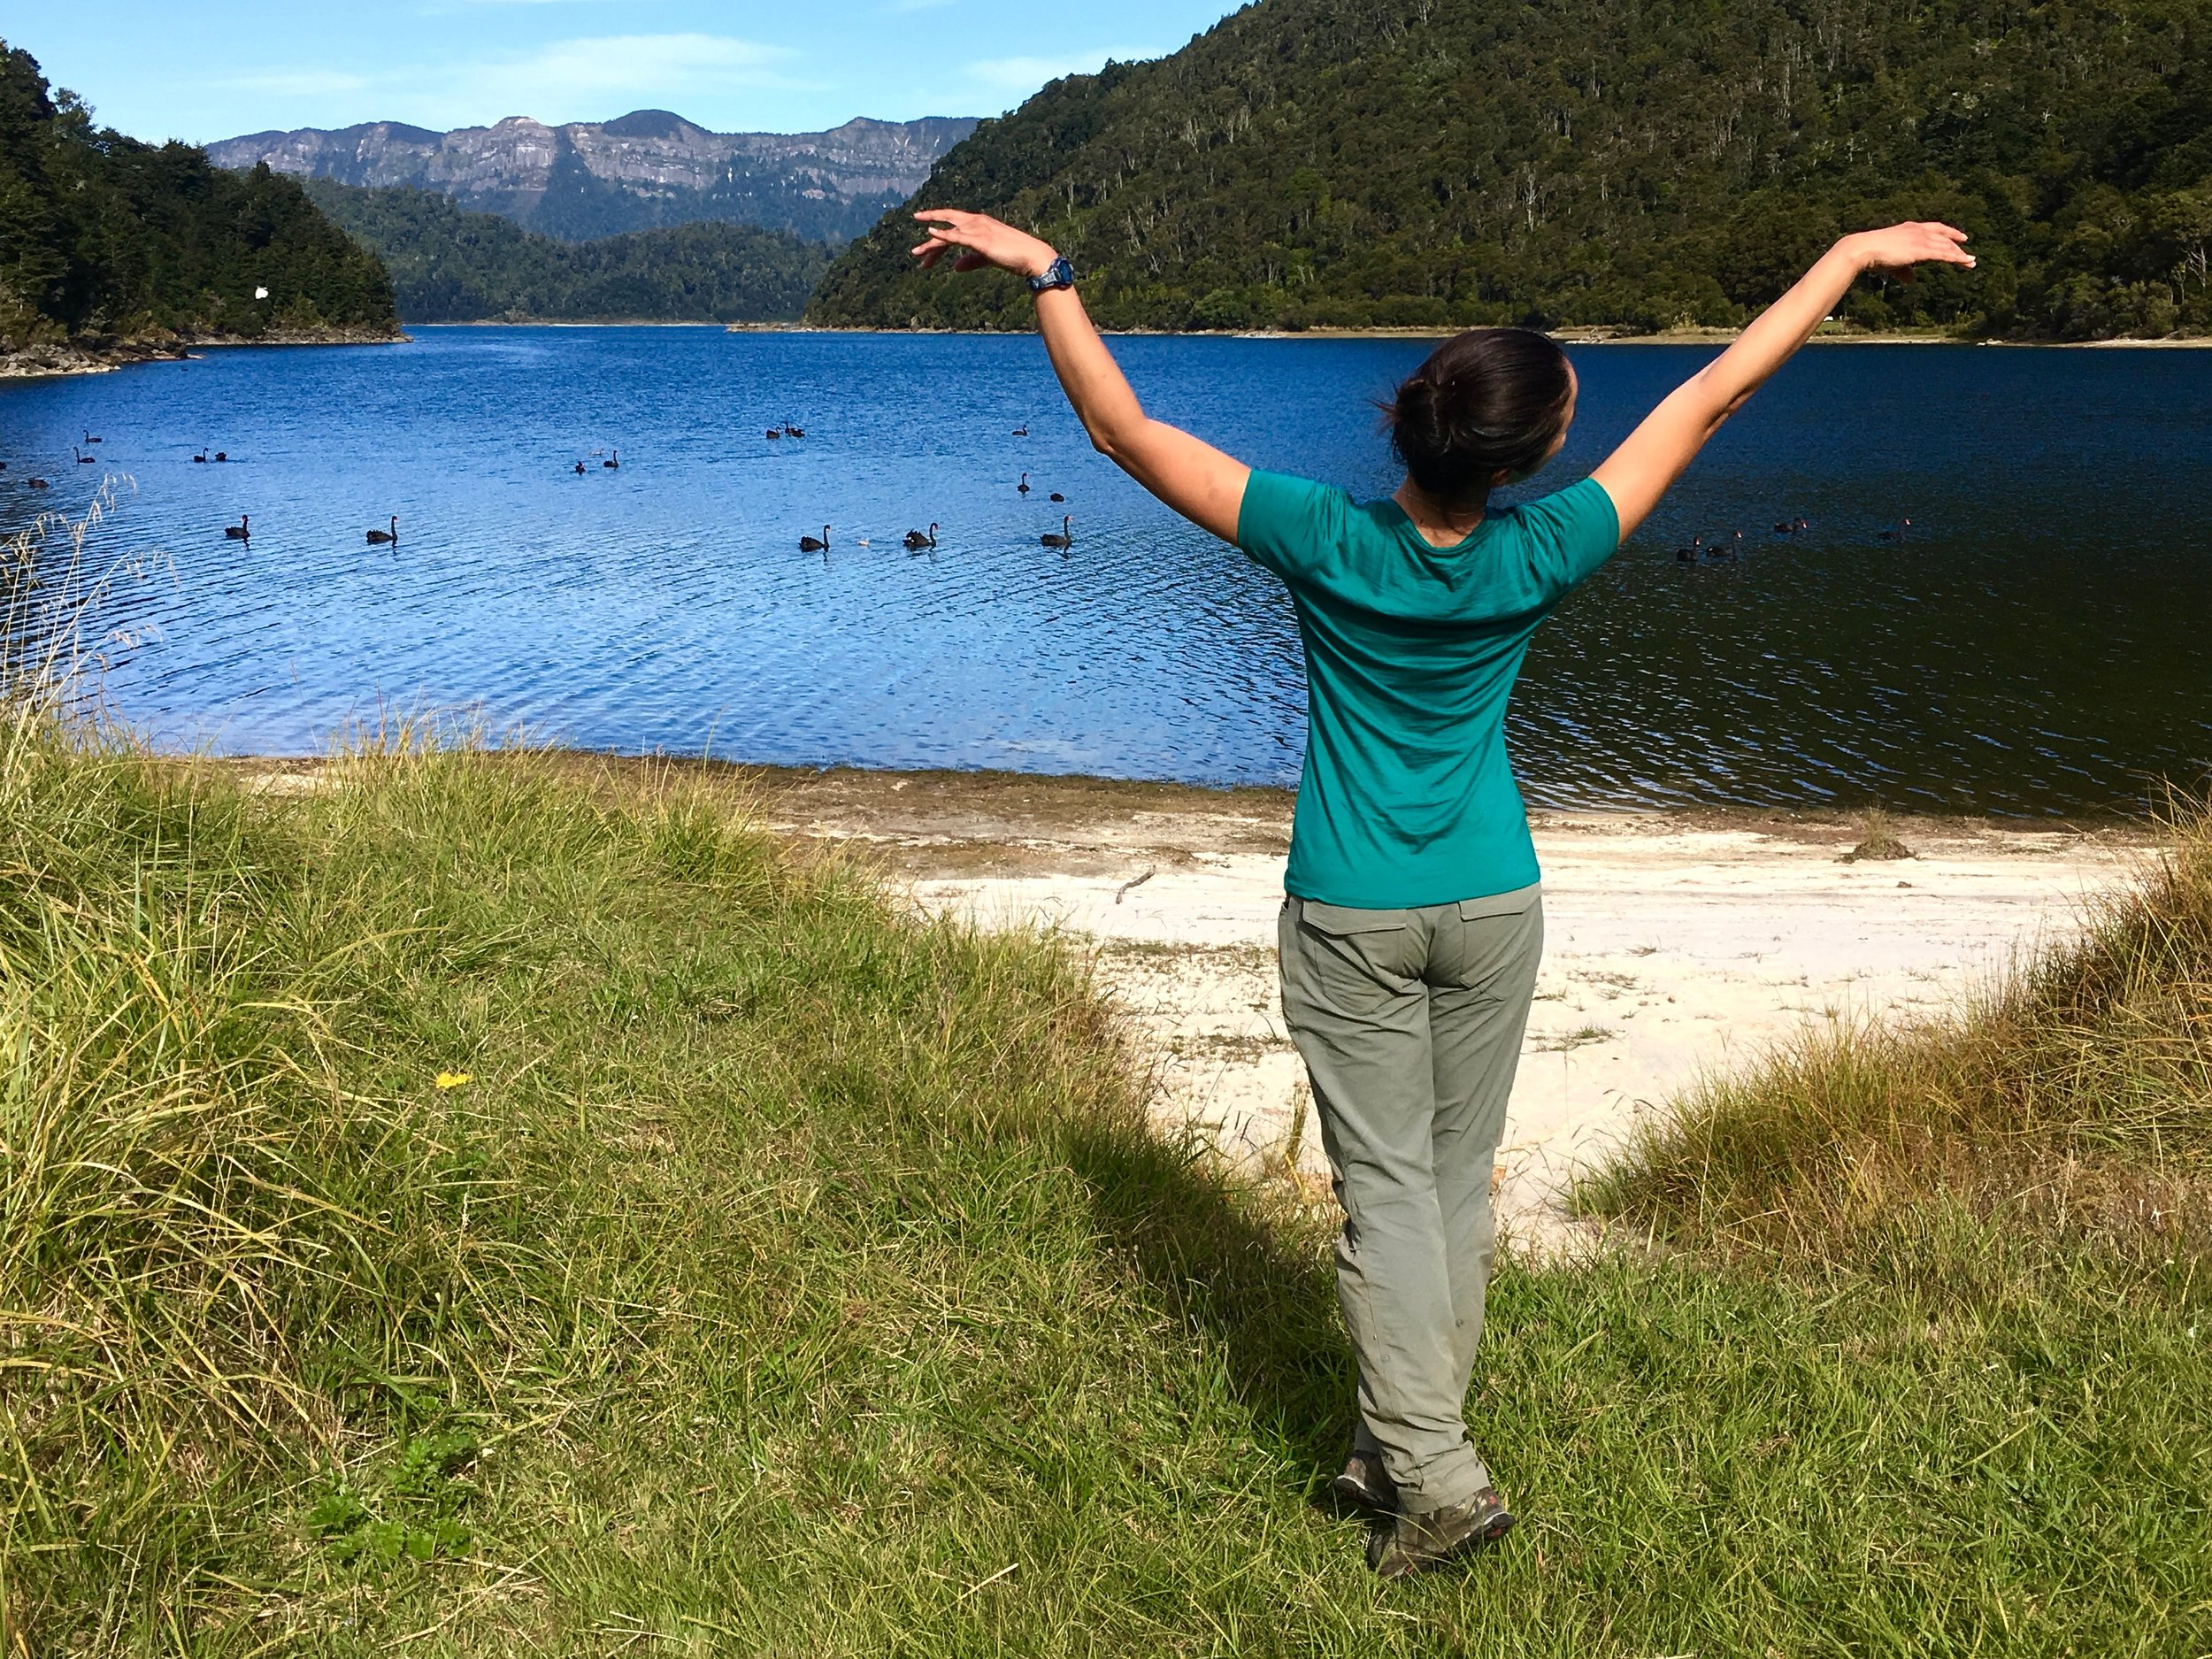 Mary at Waikaremoana Lake, New Zealand